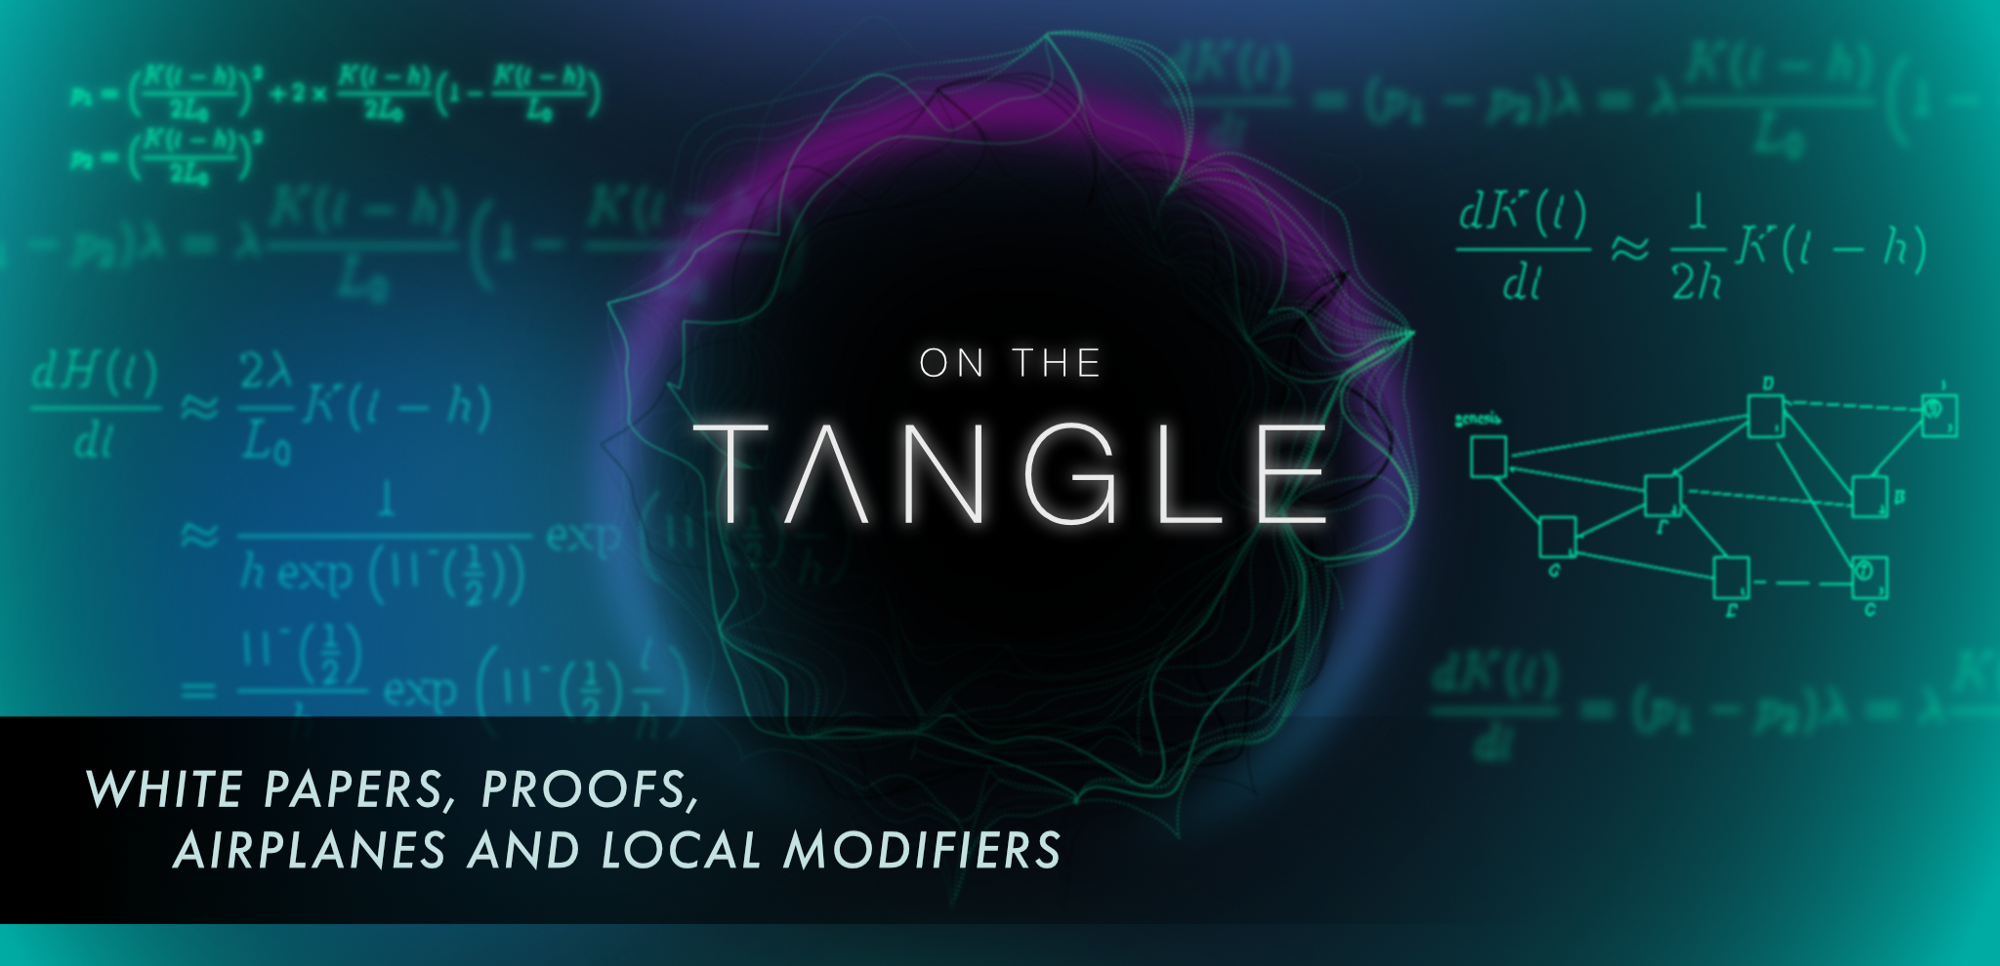 On the Tangle, White Papers, Proofs, Airplanes, and Local Modifiers